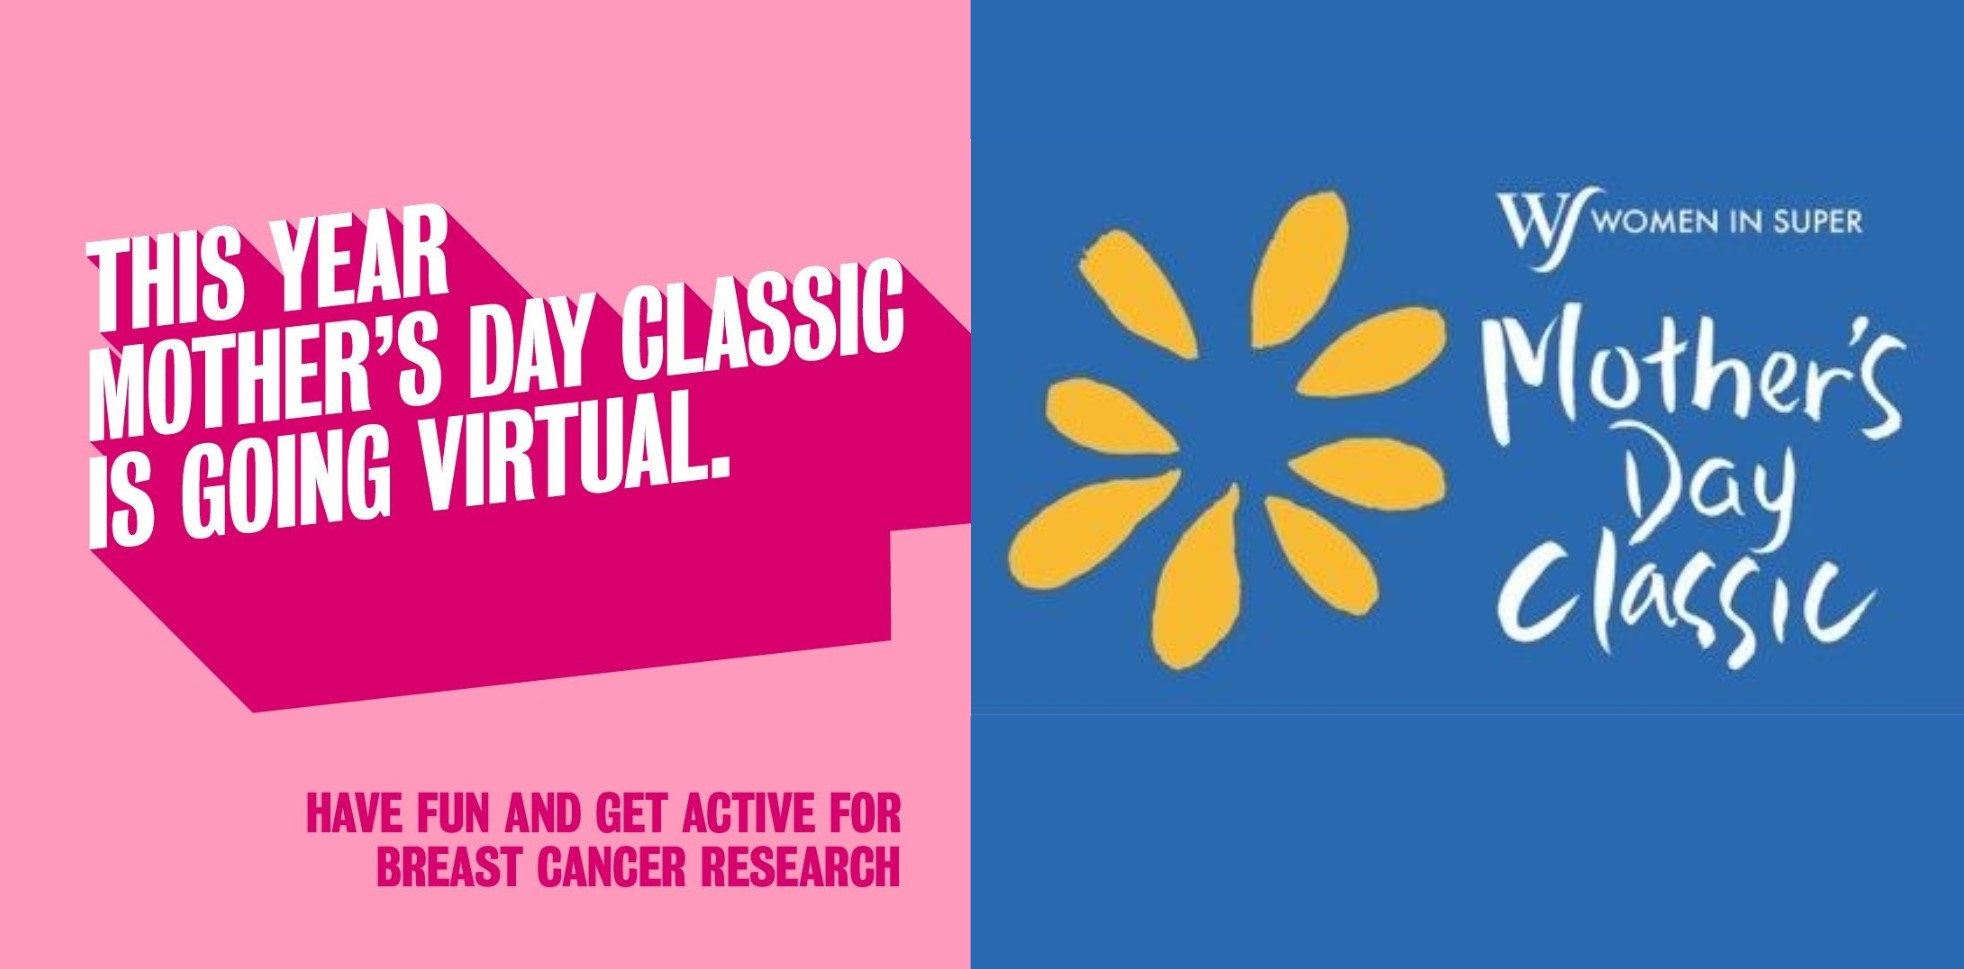 'Women in Super' Mother's Day Classic logo and text 'This year Mother's Day Classic is going Virtual. Have fun and get active for breast cancer research'.